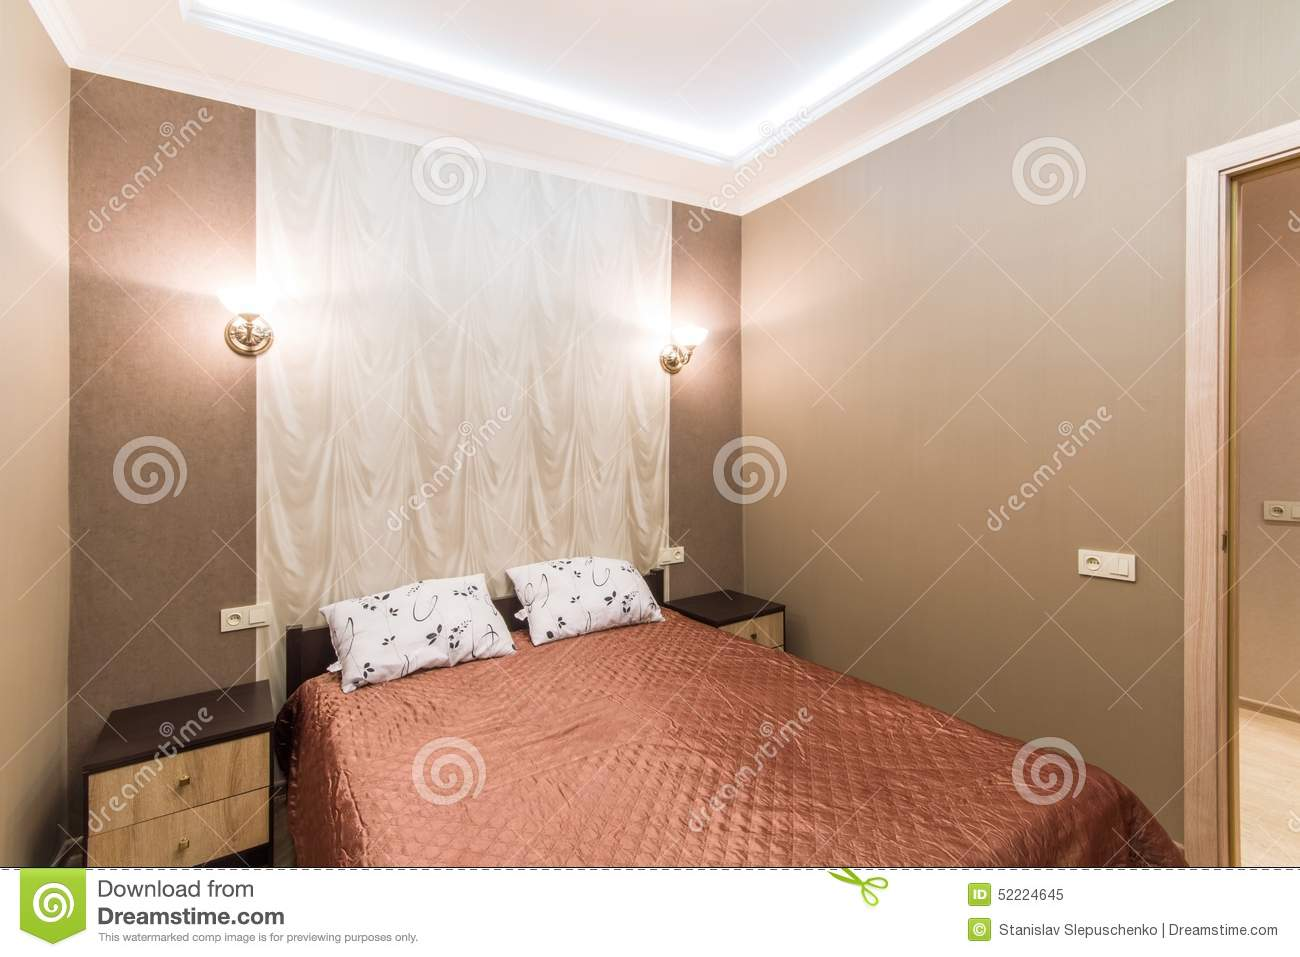 Small Bedroom With Double Bed hotel room. small bedroom with double bed stock photo - image